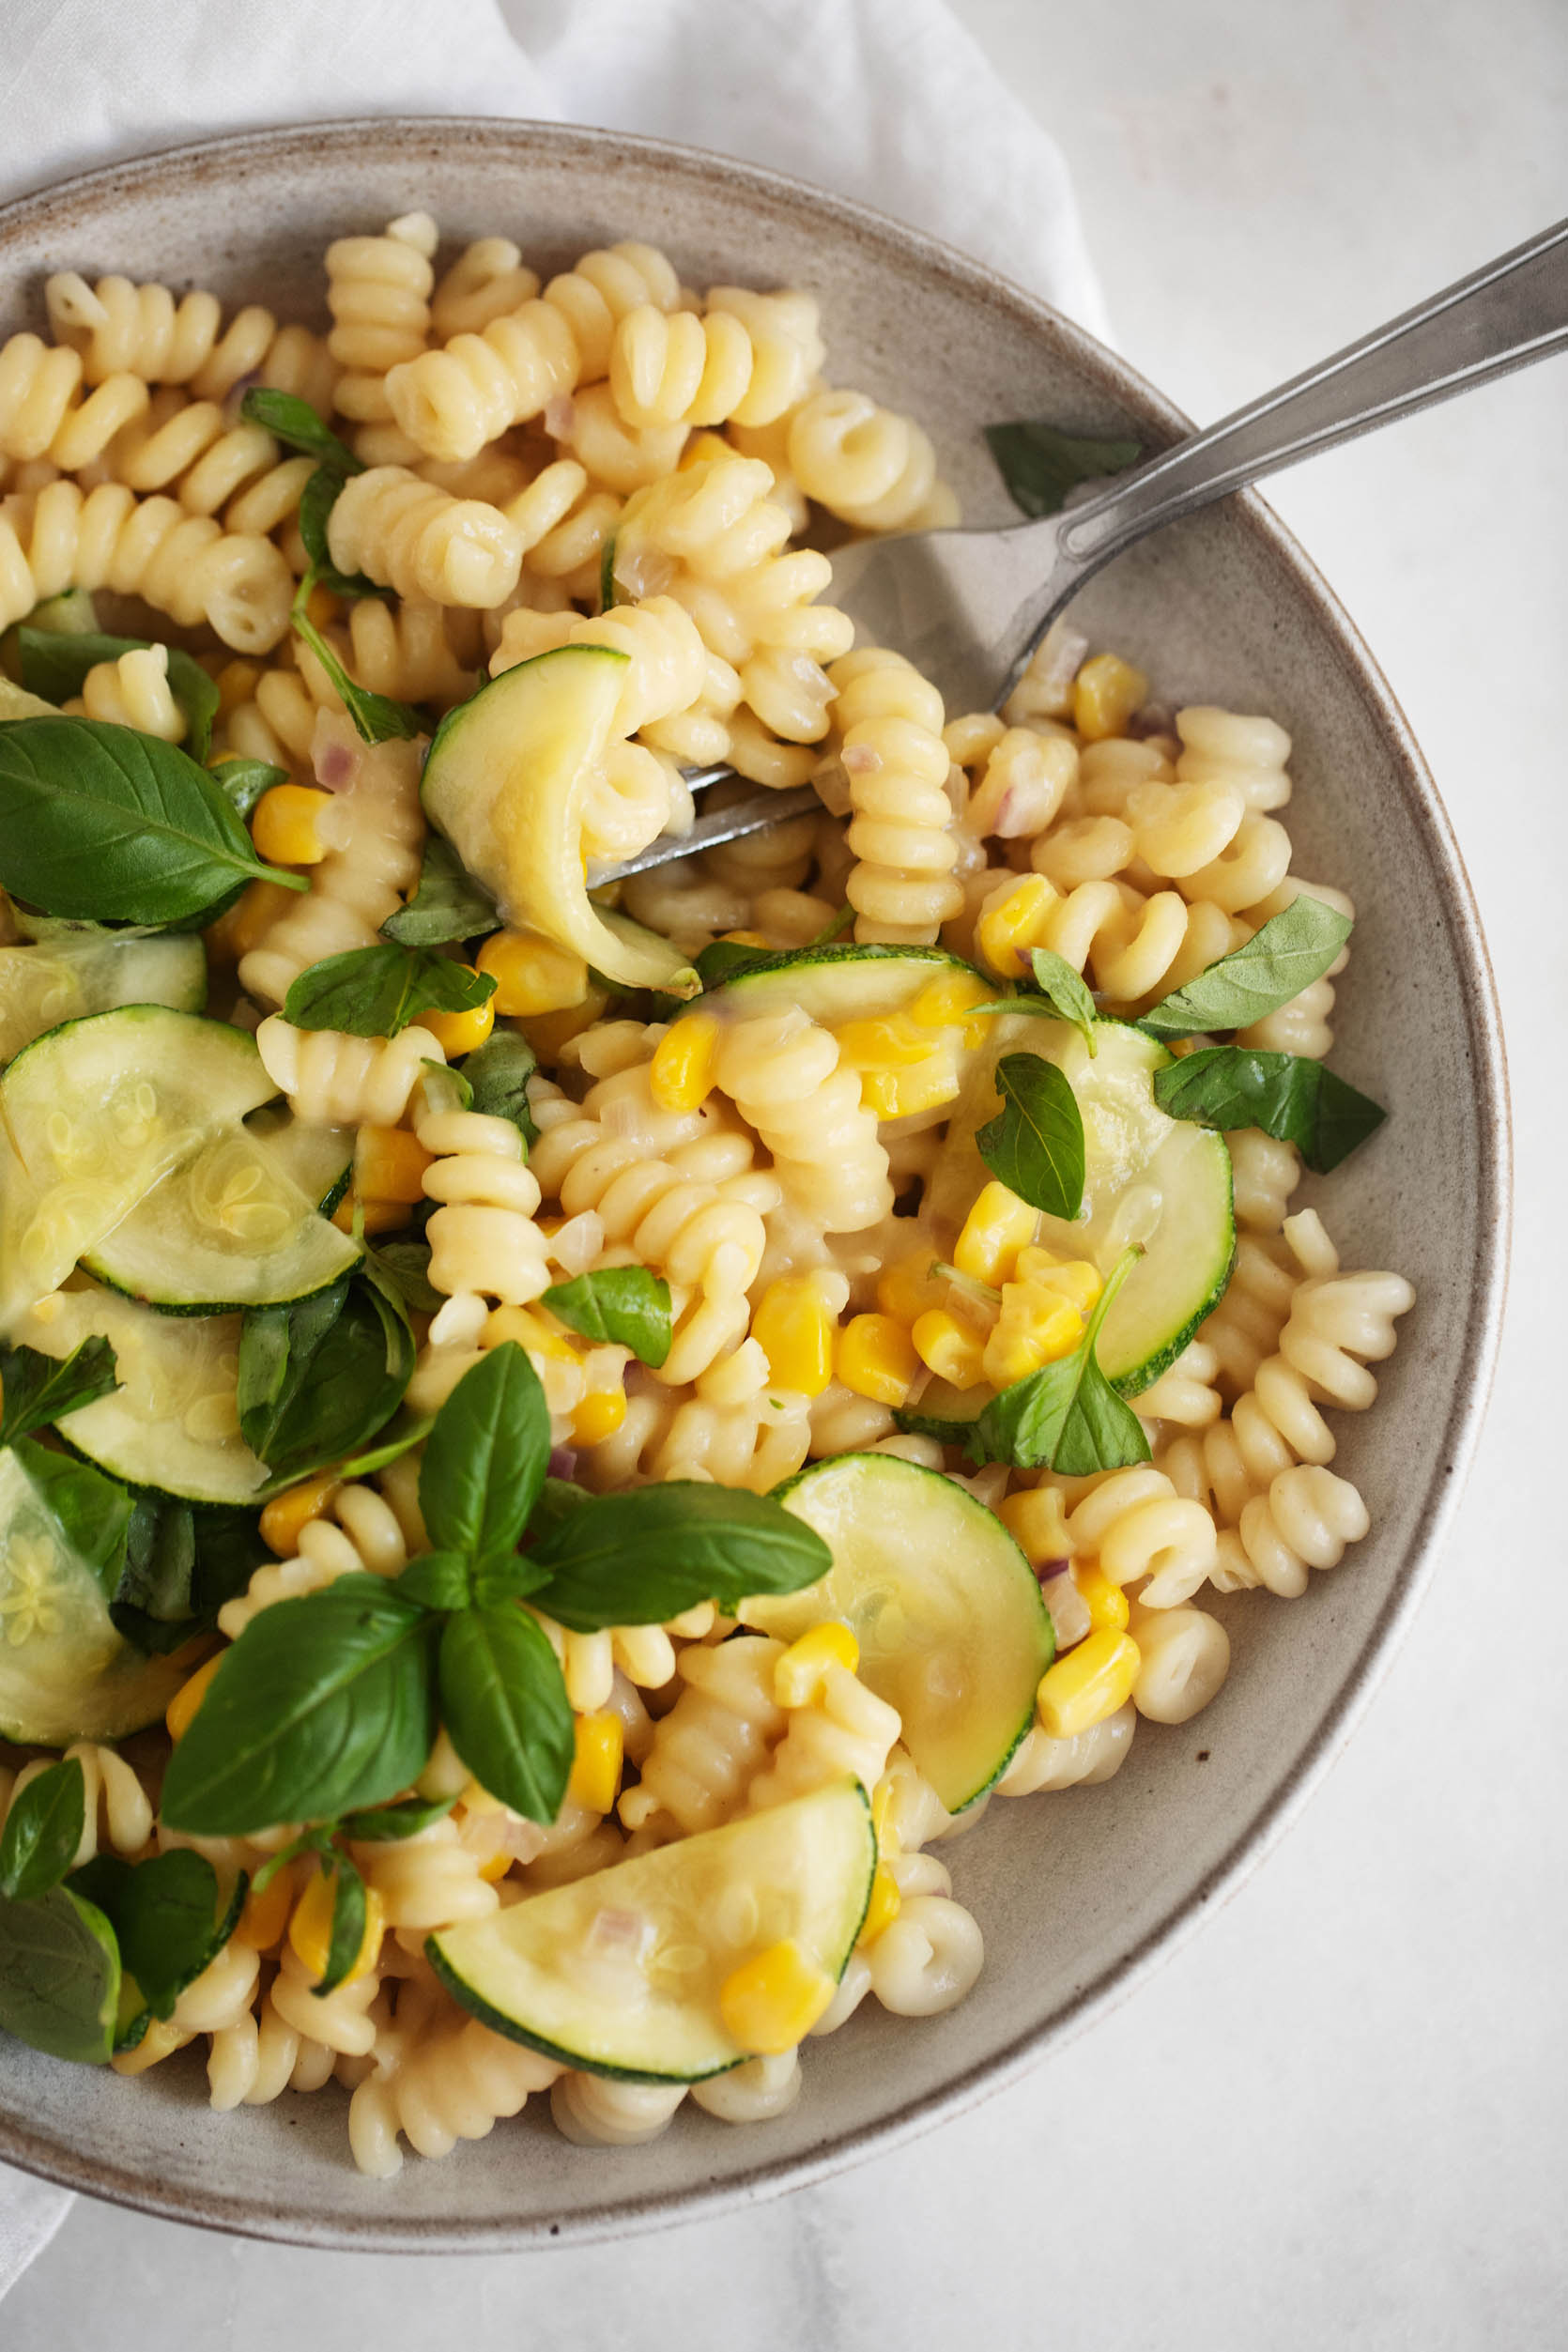 A vibrant dish of pasta with sweet summer corn, zucchini, and herbs